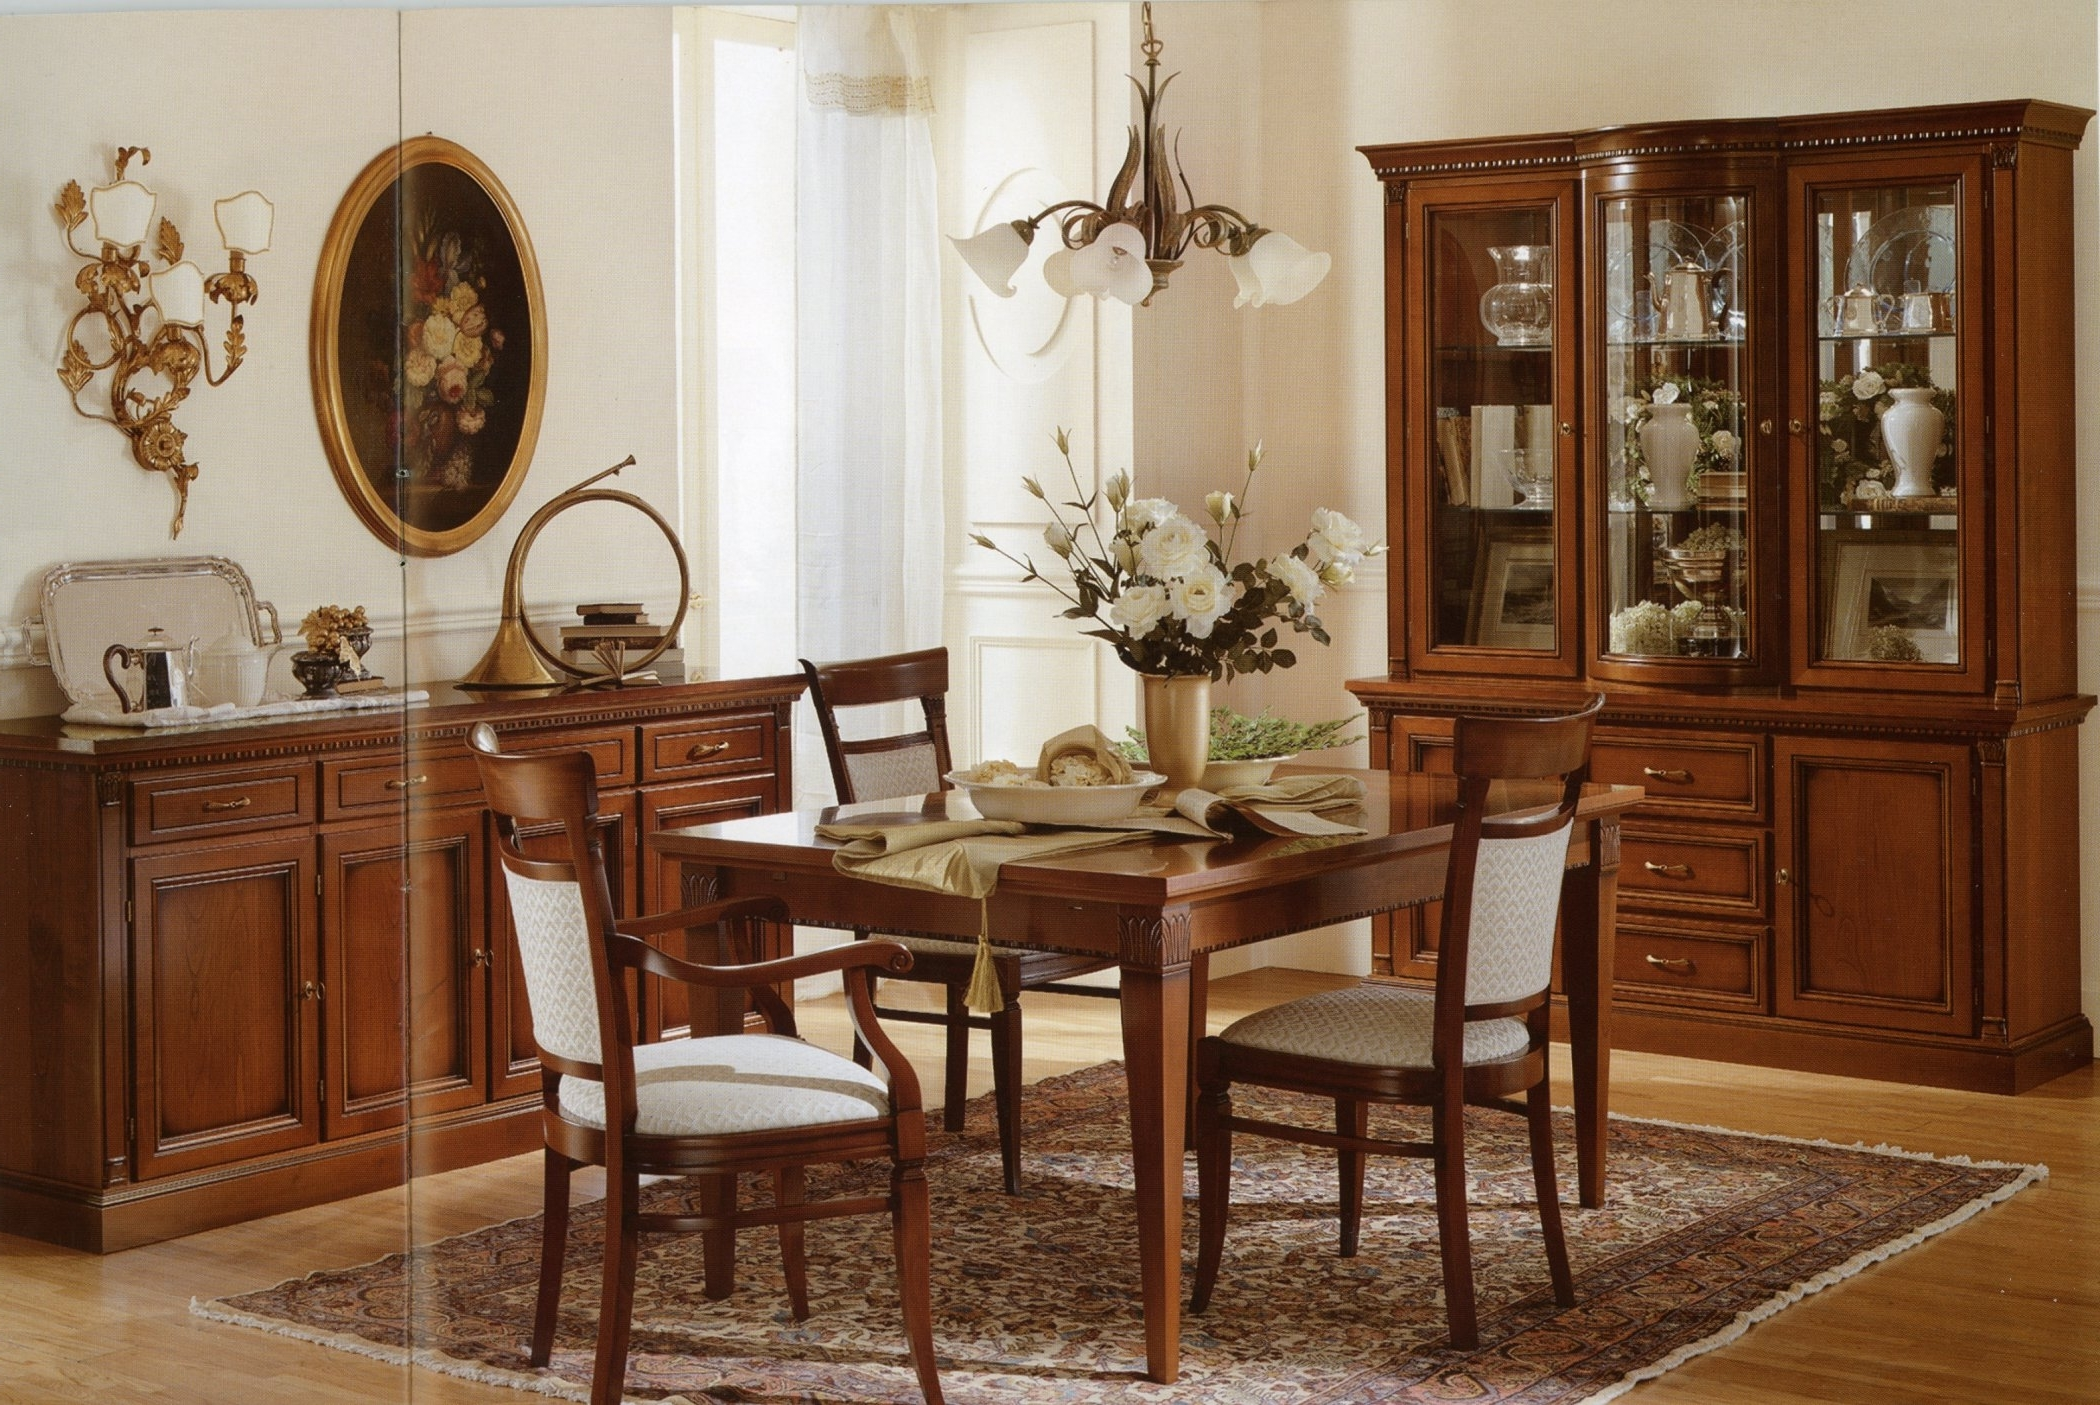 Wooden Italian Dining Room Buffet 8437  House Decoration